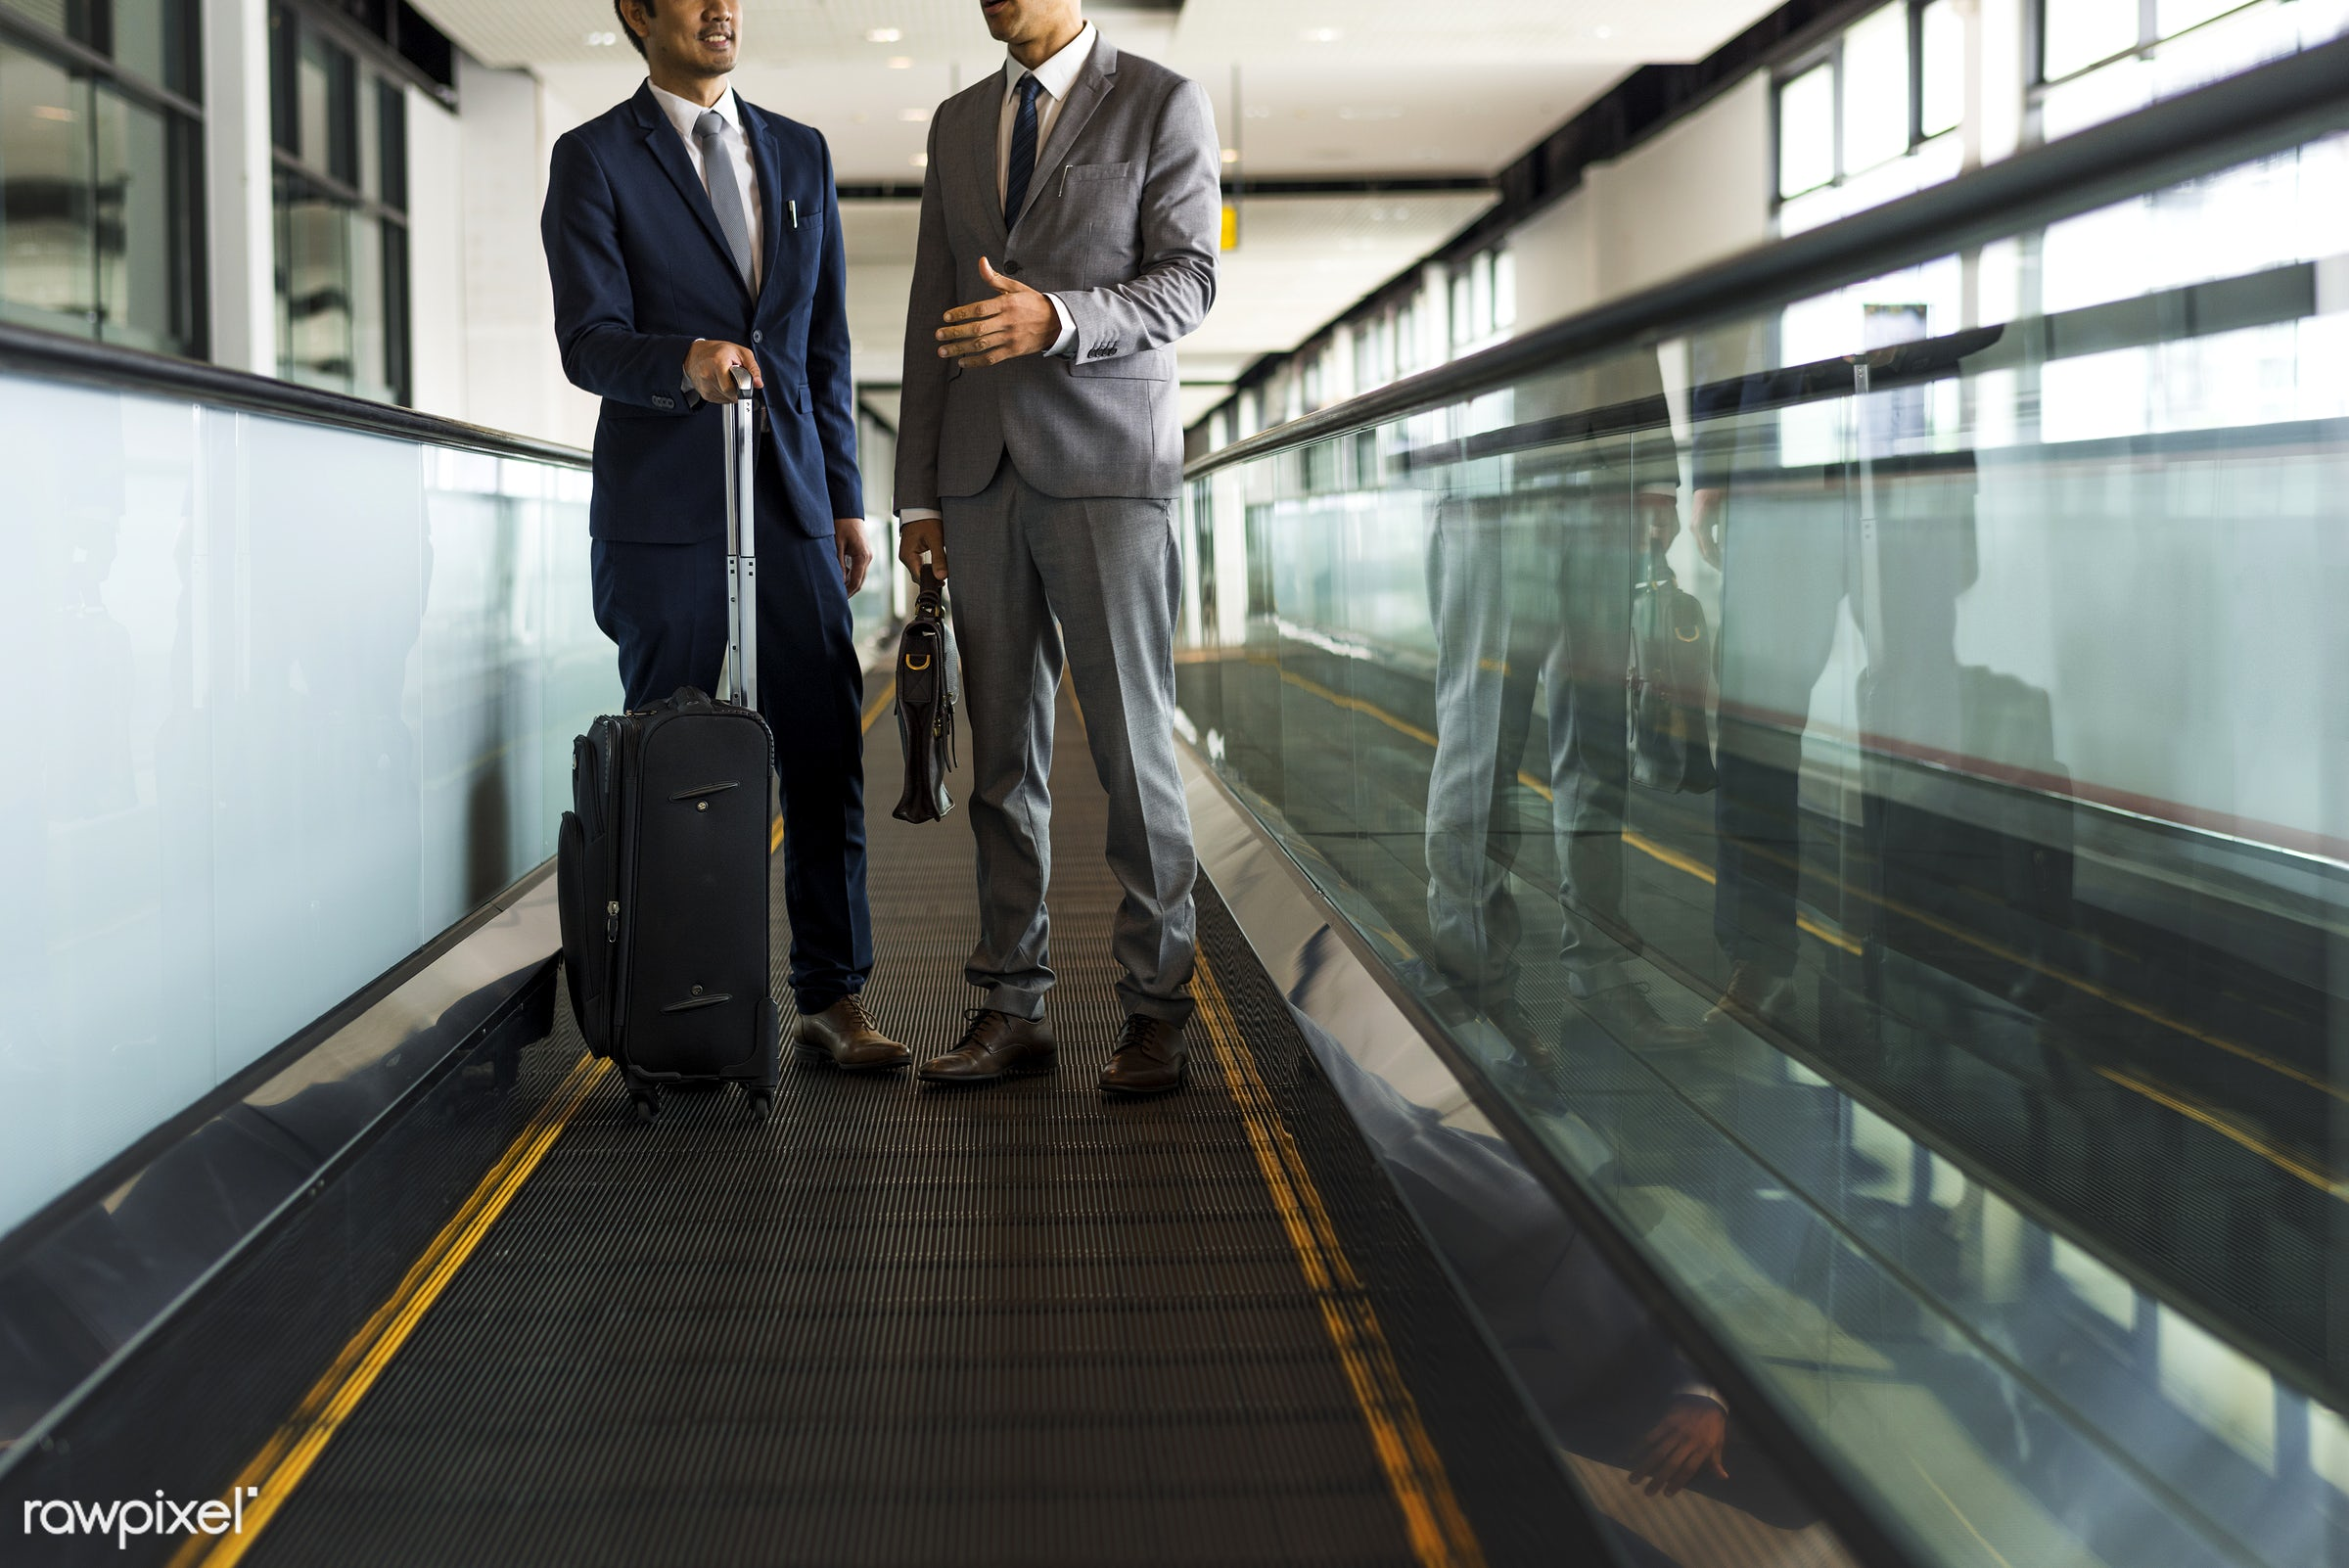 baggage, business trip, person, manager, suit and tie, white collar worker, diverse, luggage, travel, people, business,...